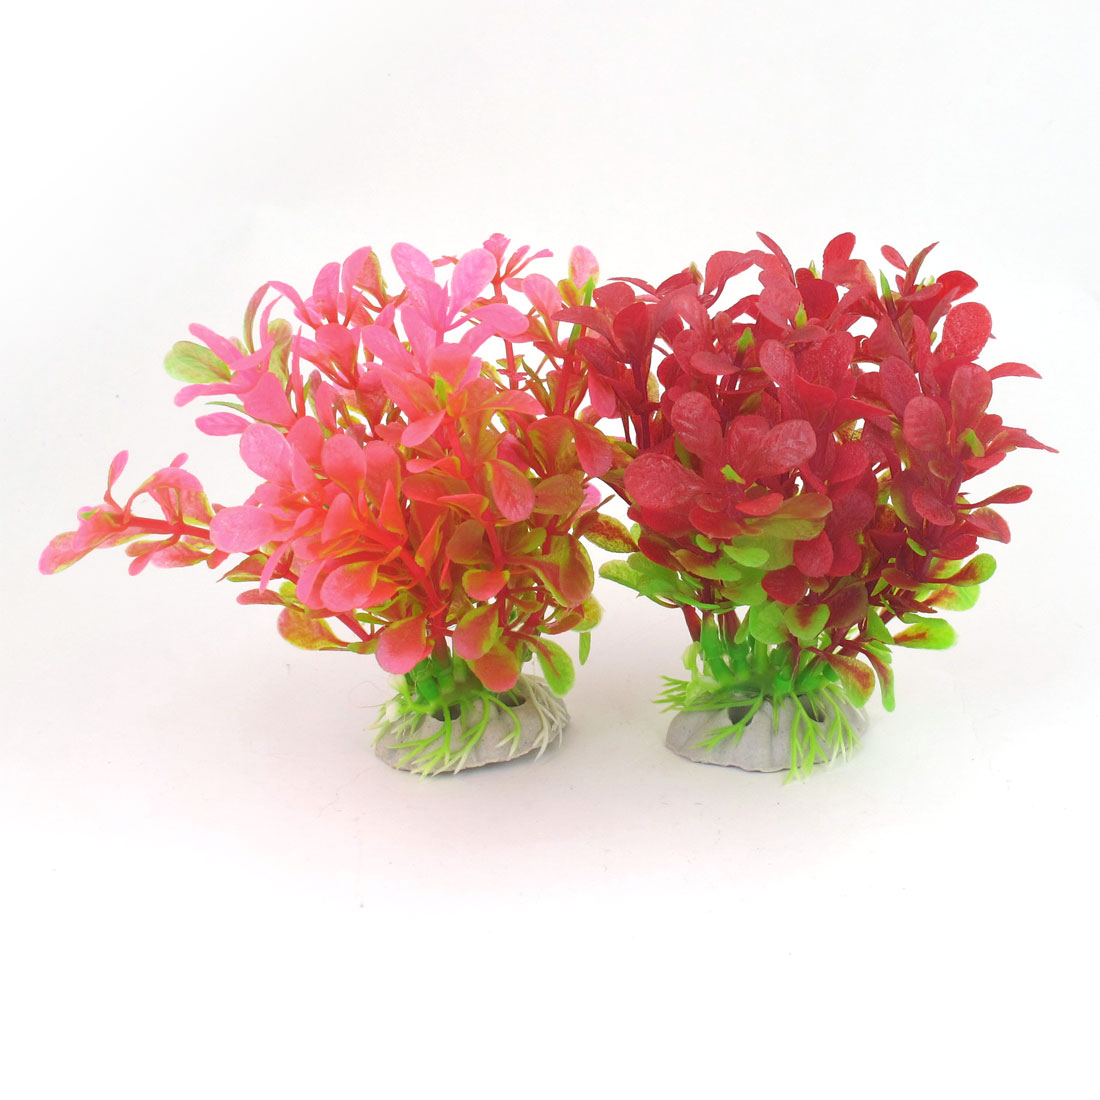 "2 Pcs 4.1"" High Red Pink Emulational Aquarium Fish Tank Plants Decoration"